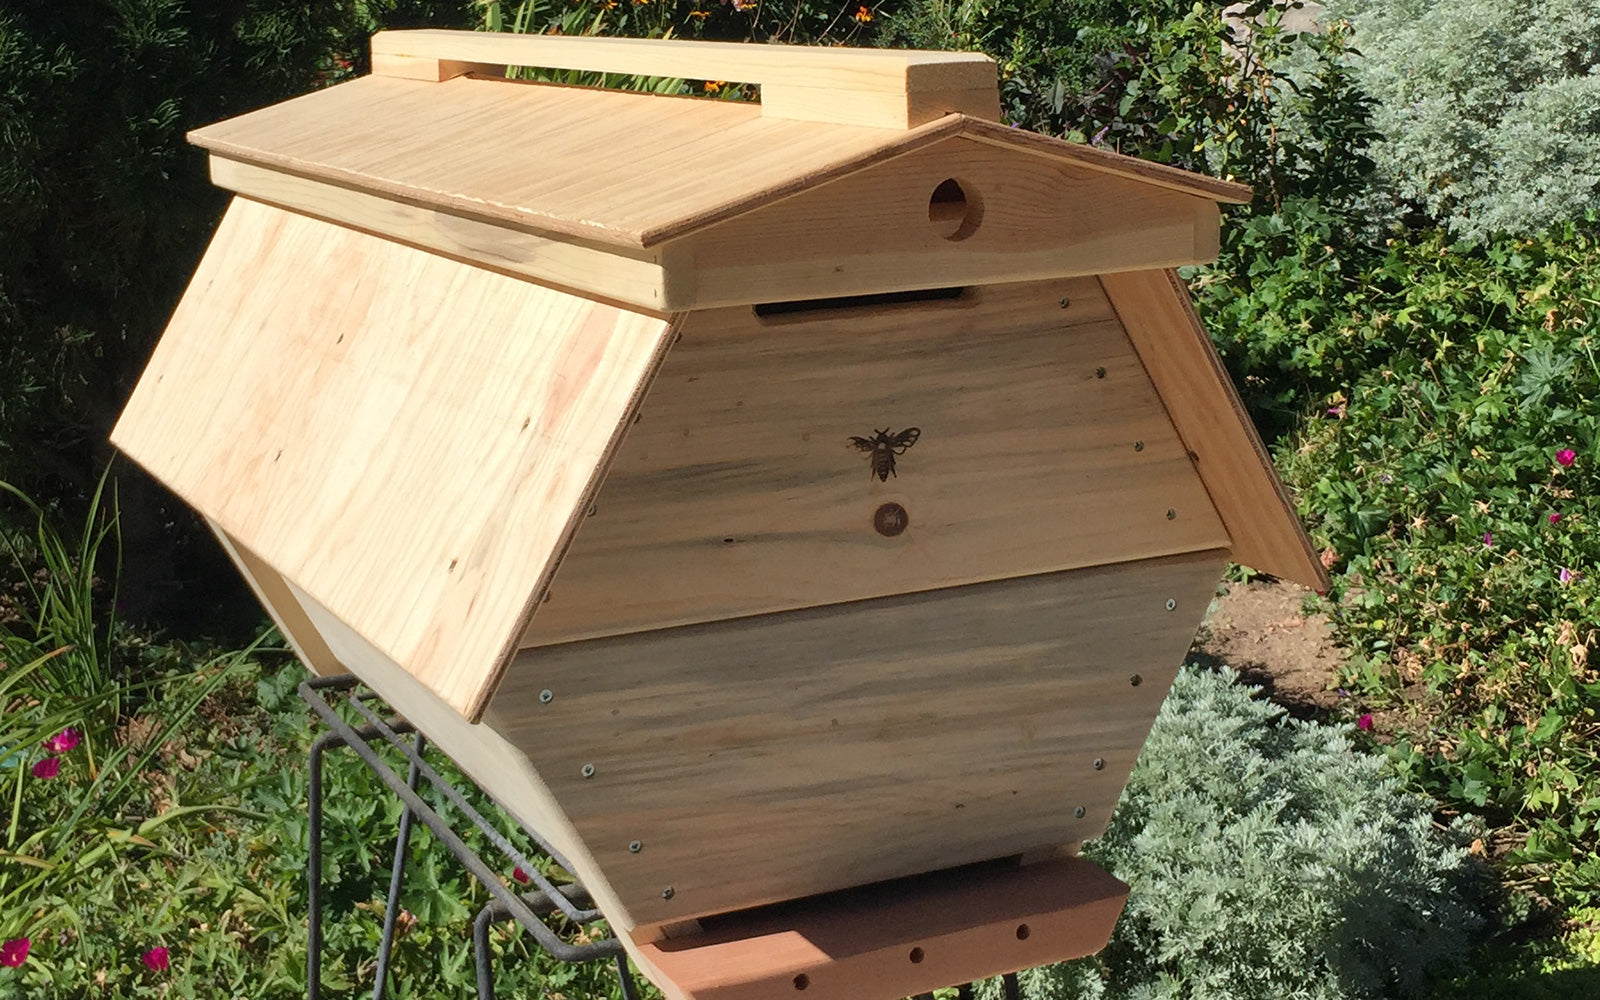 The Cathedral Hive fully assembled bee hive